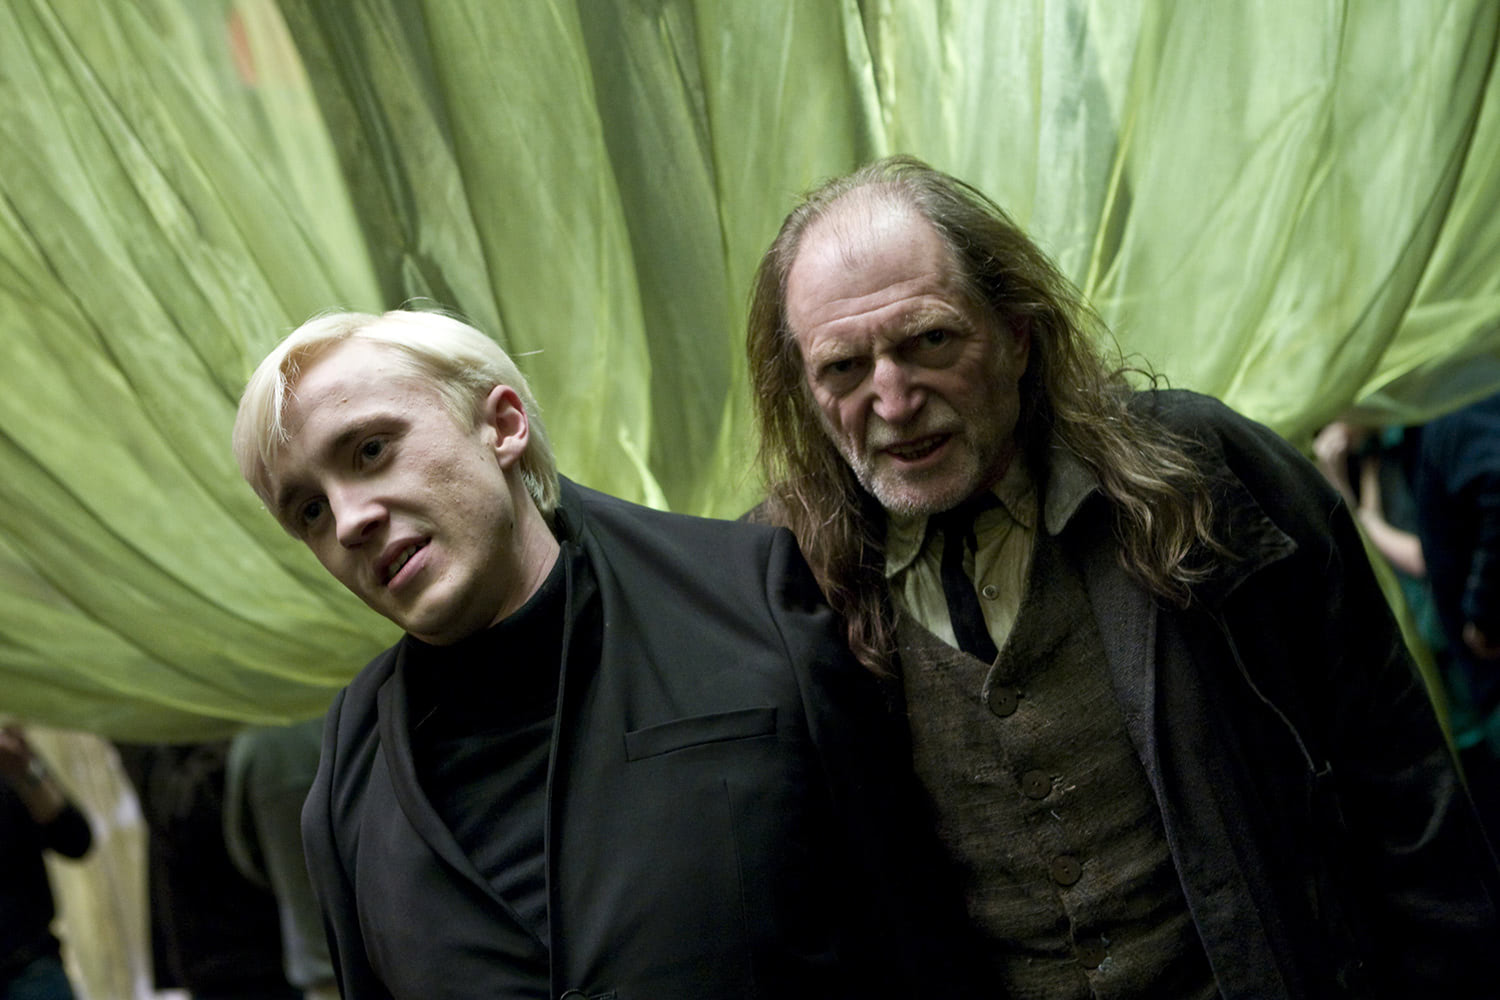 Filch catches Draco at Slughorn's party